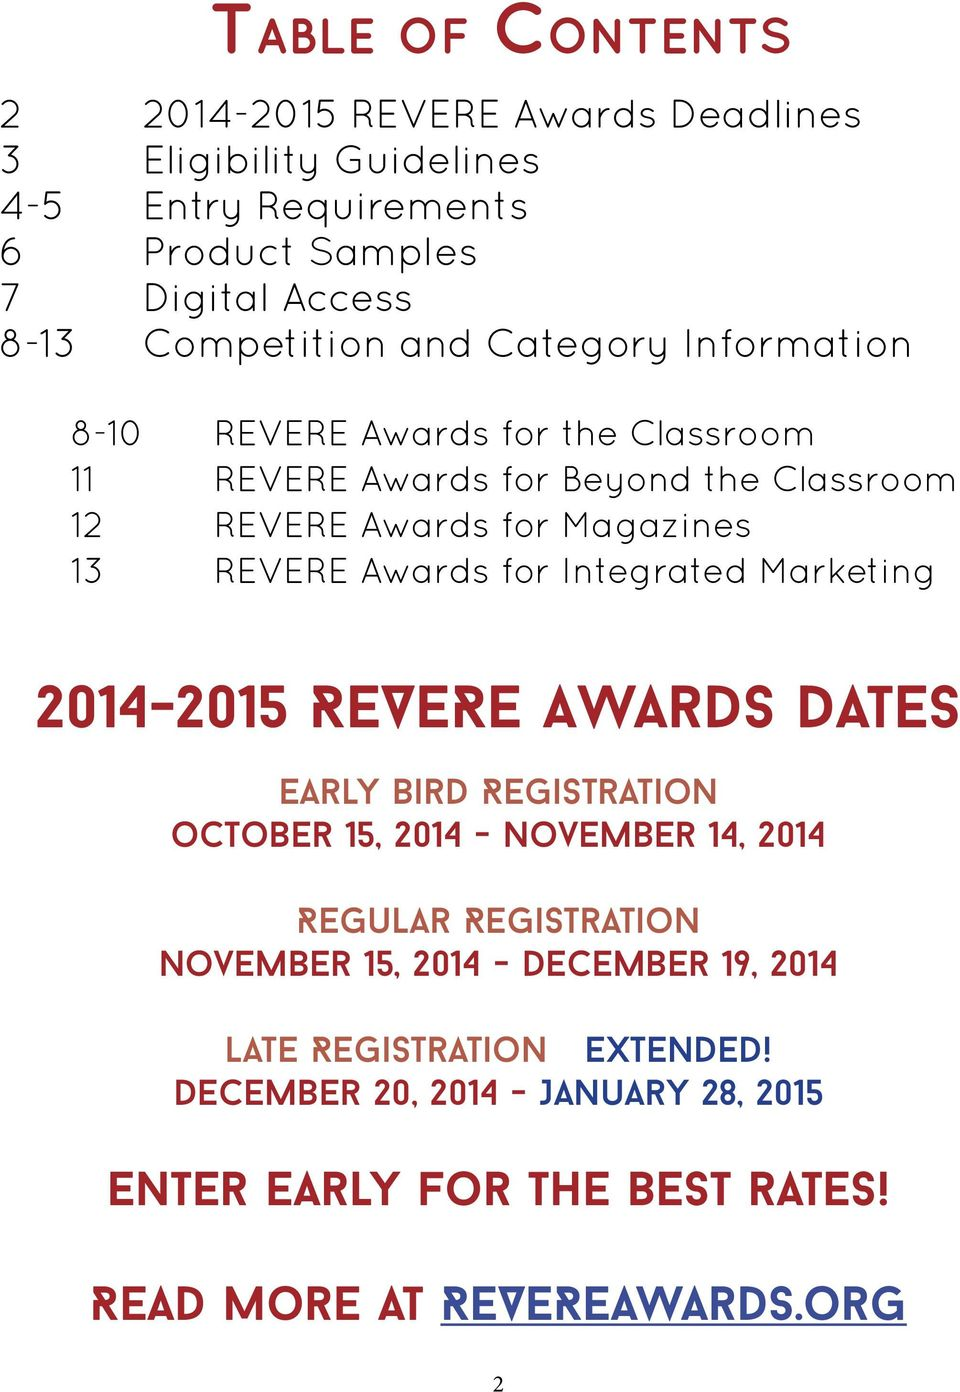 REVERE Awards for Integrated Marketing 2014-2015 REVERE Awards Dates Early Bird Registration october 15, 2014 - November 14, 2014 Regular Registration